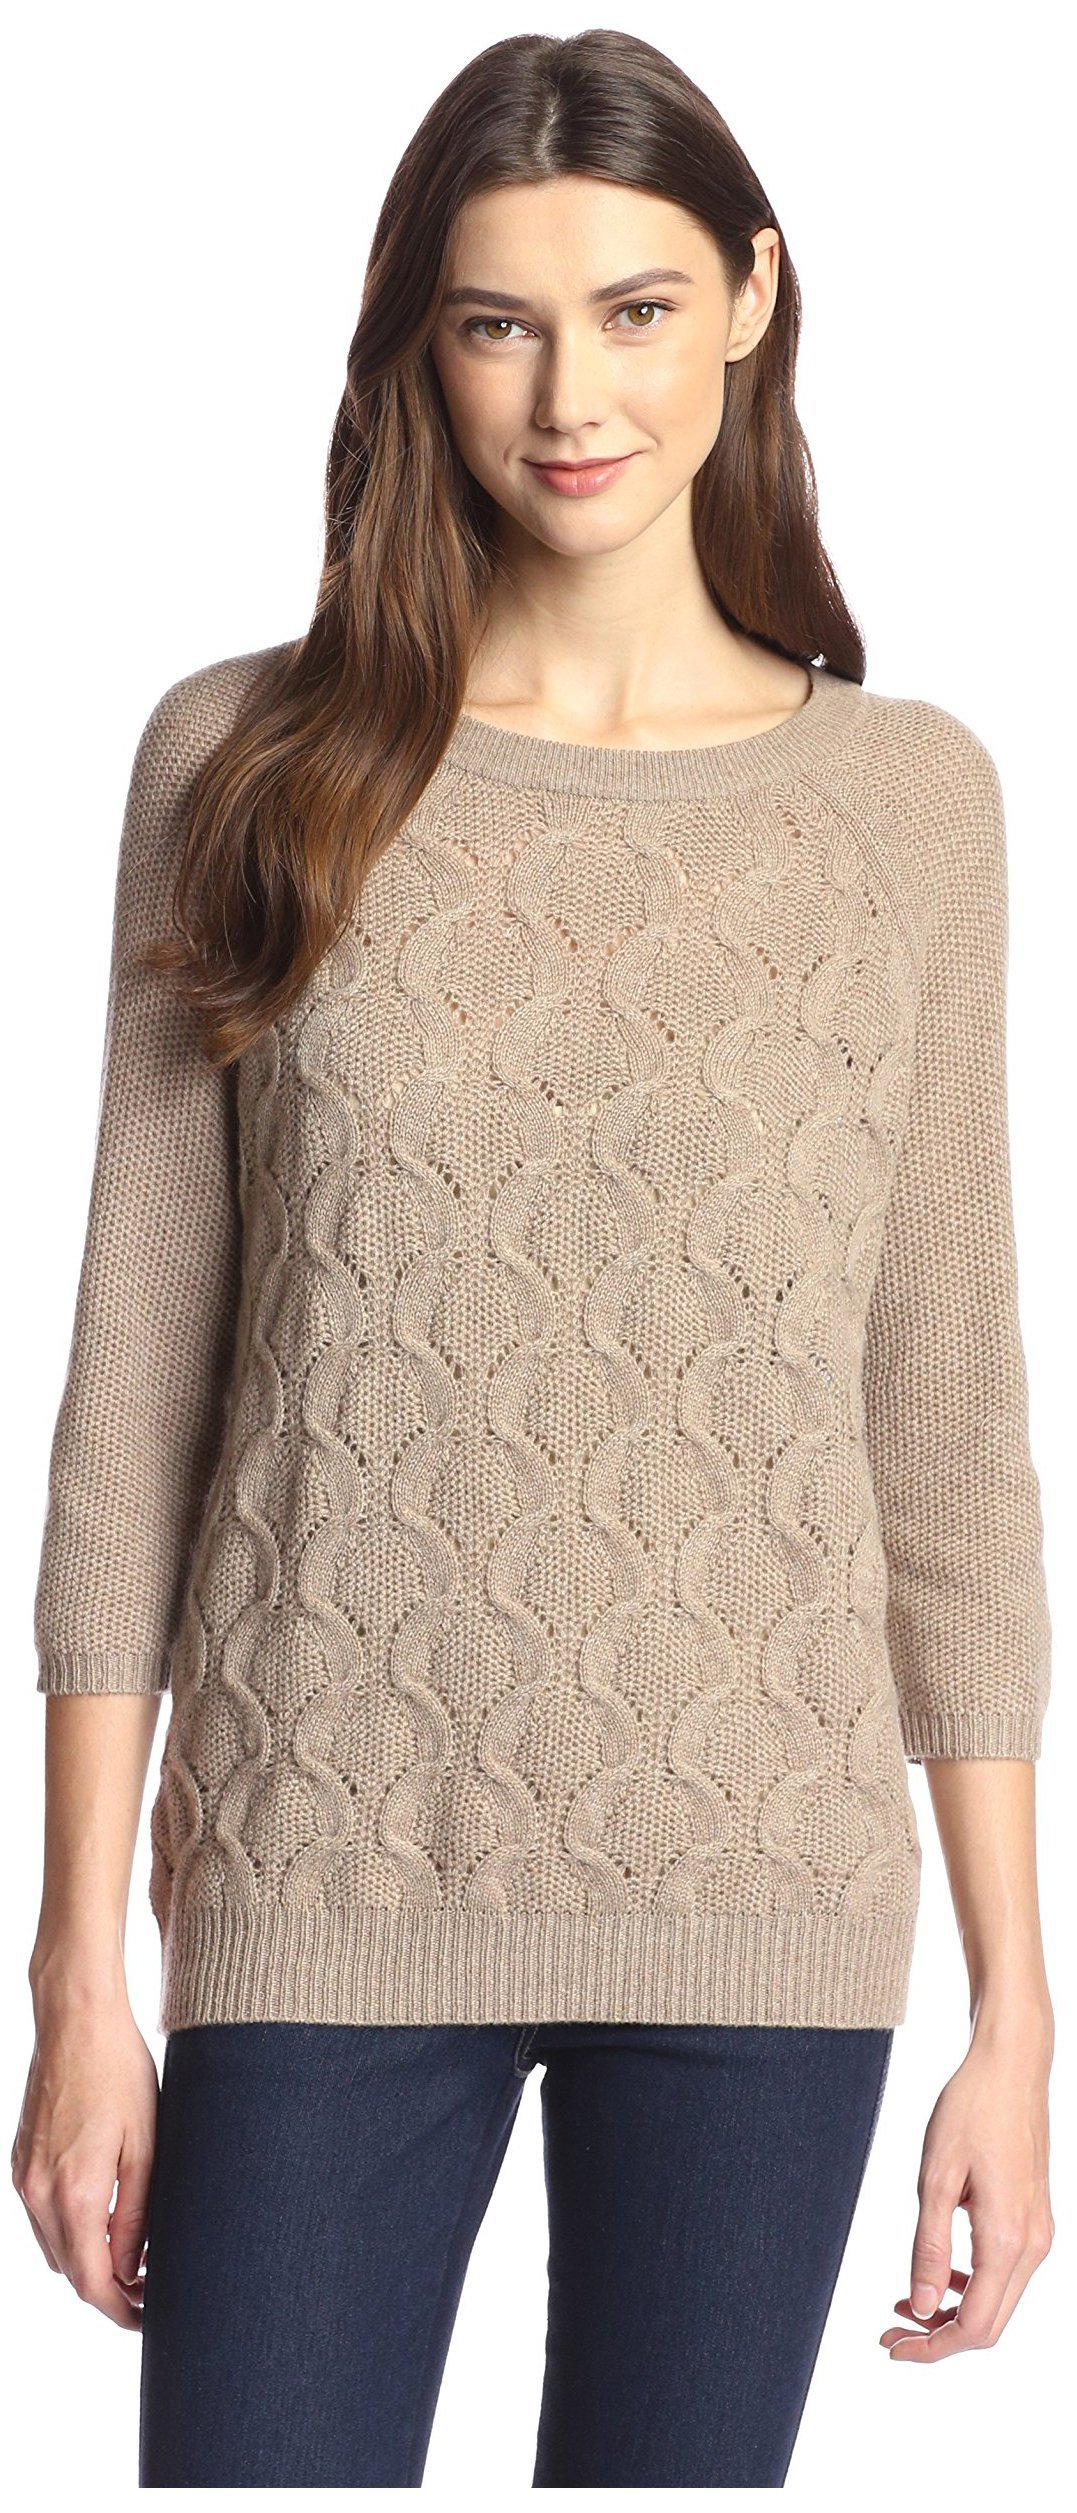 James & Erin Women's Boatneck Cable Cashmere Sweater, Dark Natural, XS